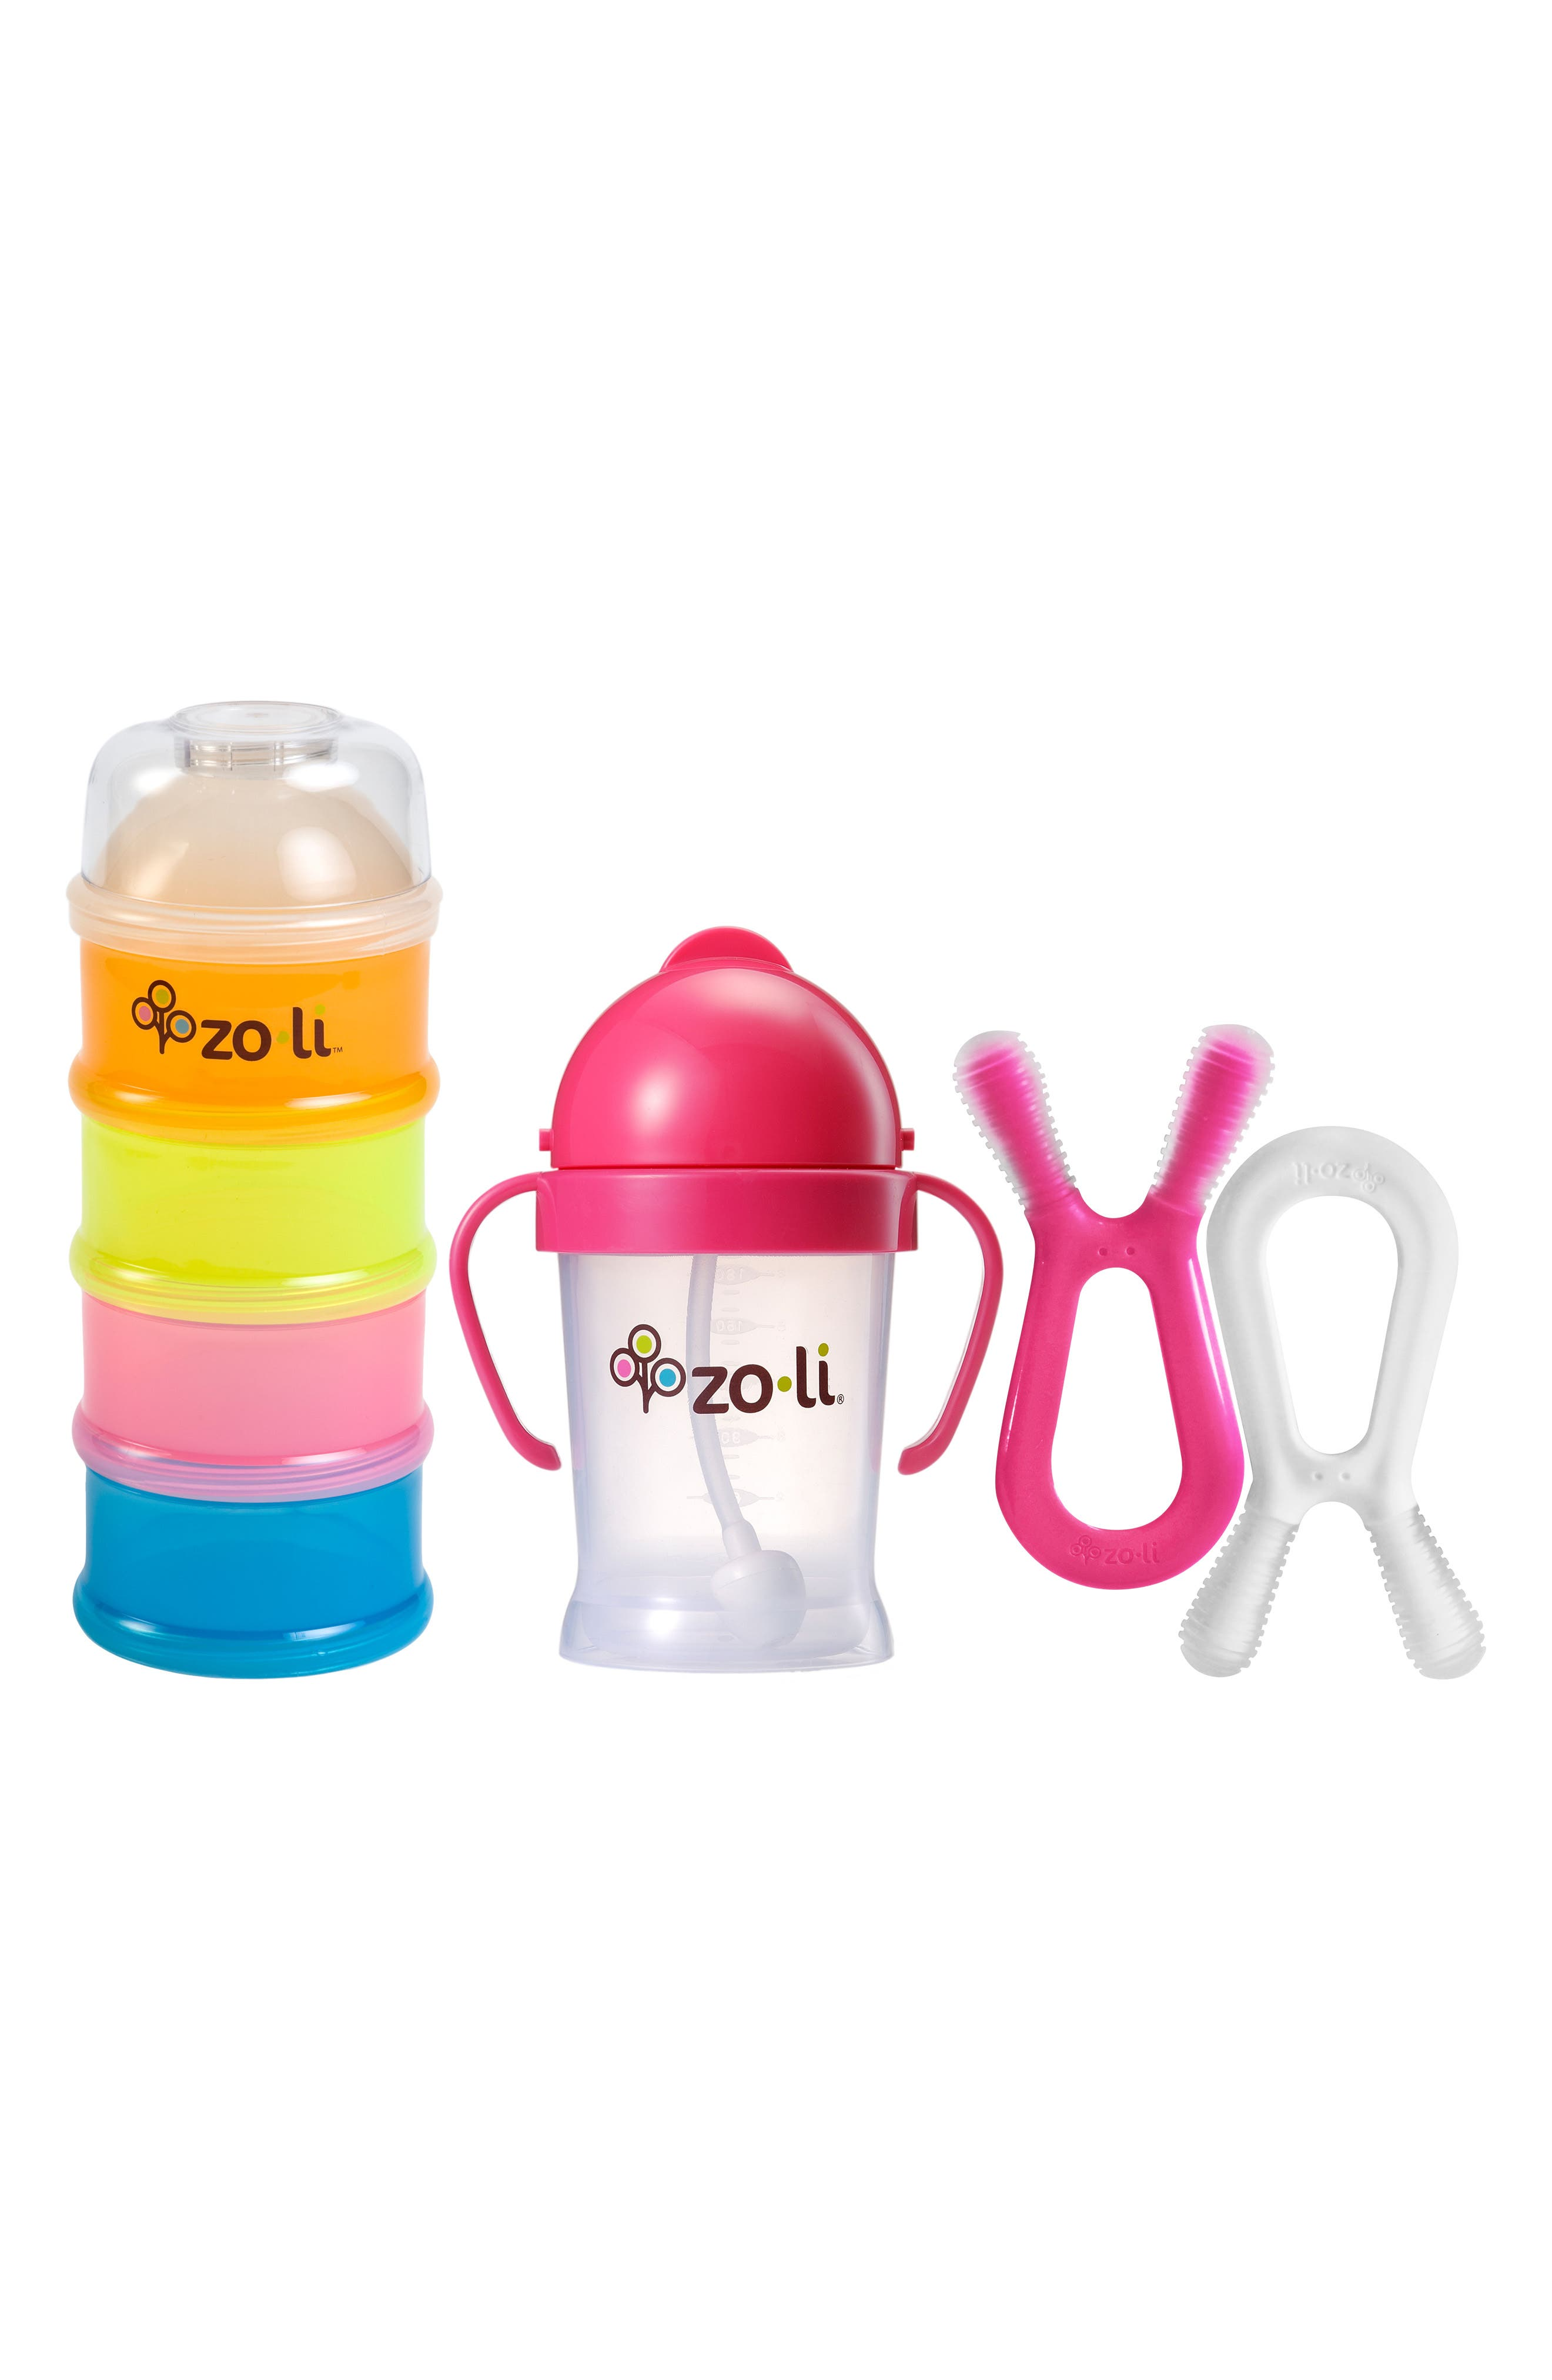 Baby on the Go Essentials 5-Piece Set,                         Main,                         color, Pink/ Pink White